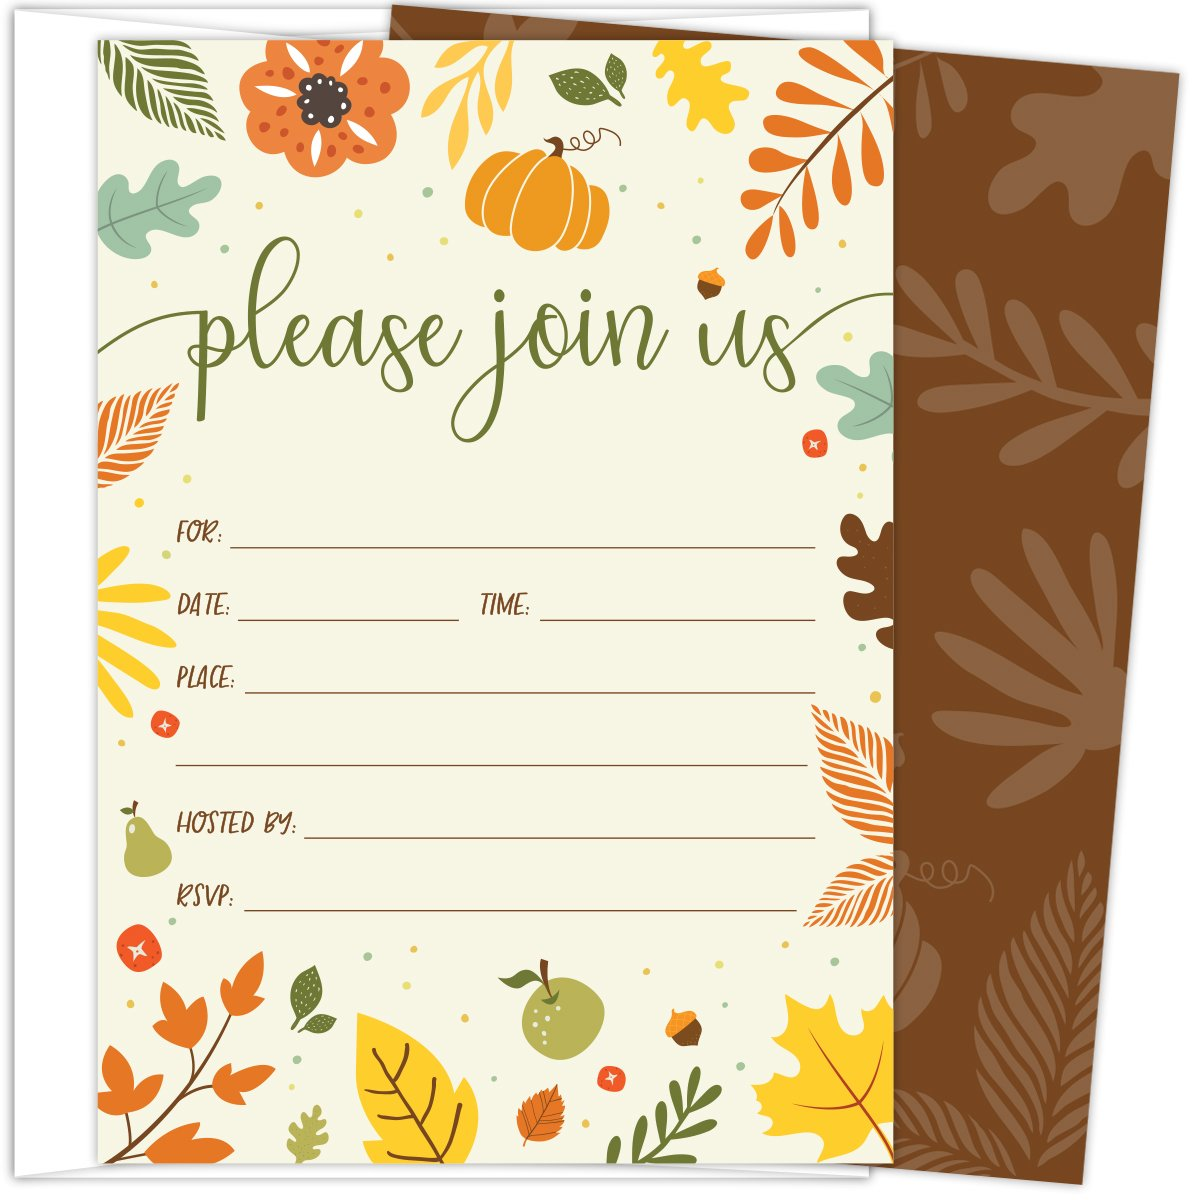 Koko Paper Co Fall Invitations in Autumn Colors with Pumpkin, Fruits and Florals. 25 Fill In Style Cards and Envelopes for Thanksgiving, Harvest Party, Birthday, Engagement, Bridal and Baby Shower, or by Koko Paper Co (Image #1)